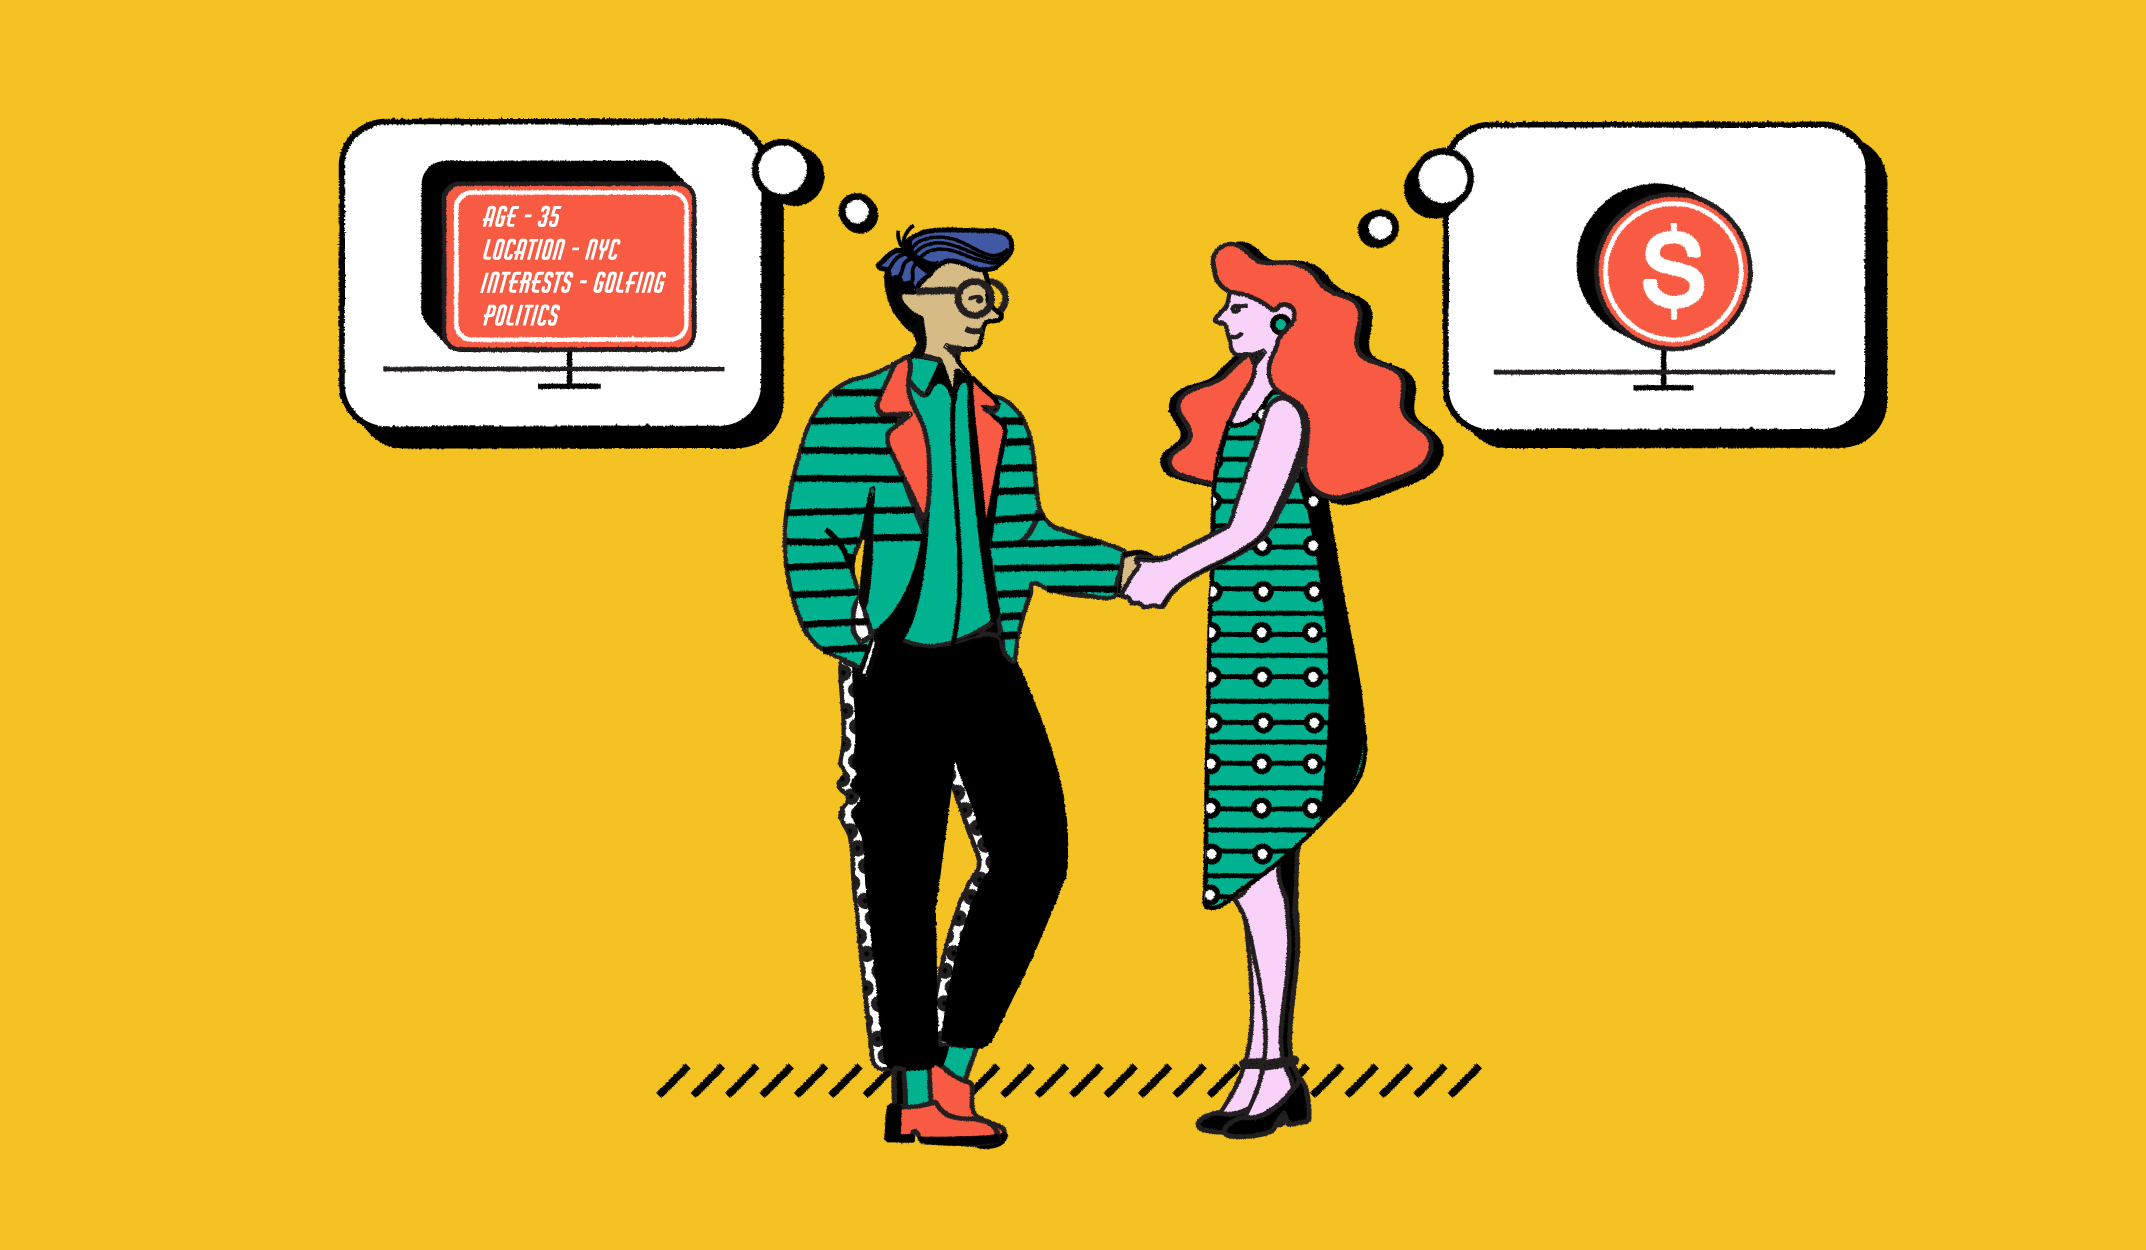 The feature image shows an illustration of a man and a woman with thought bubbles—one with a set of demographic data and the other showing a coin.